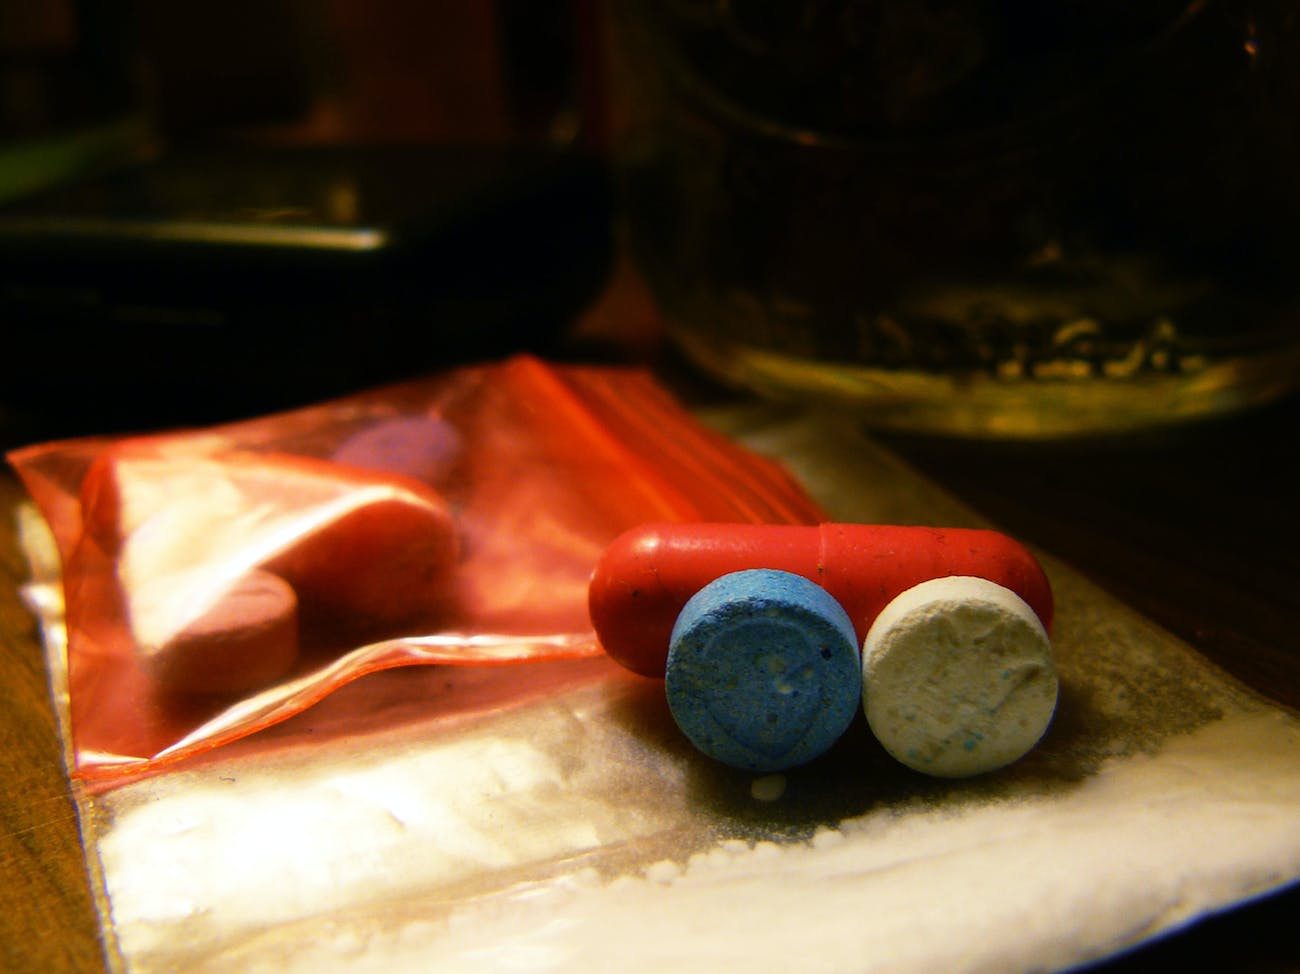 Drug Researchers Find MDMA's Serotonin-Depleting Effects May Be